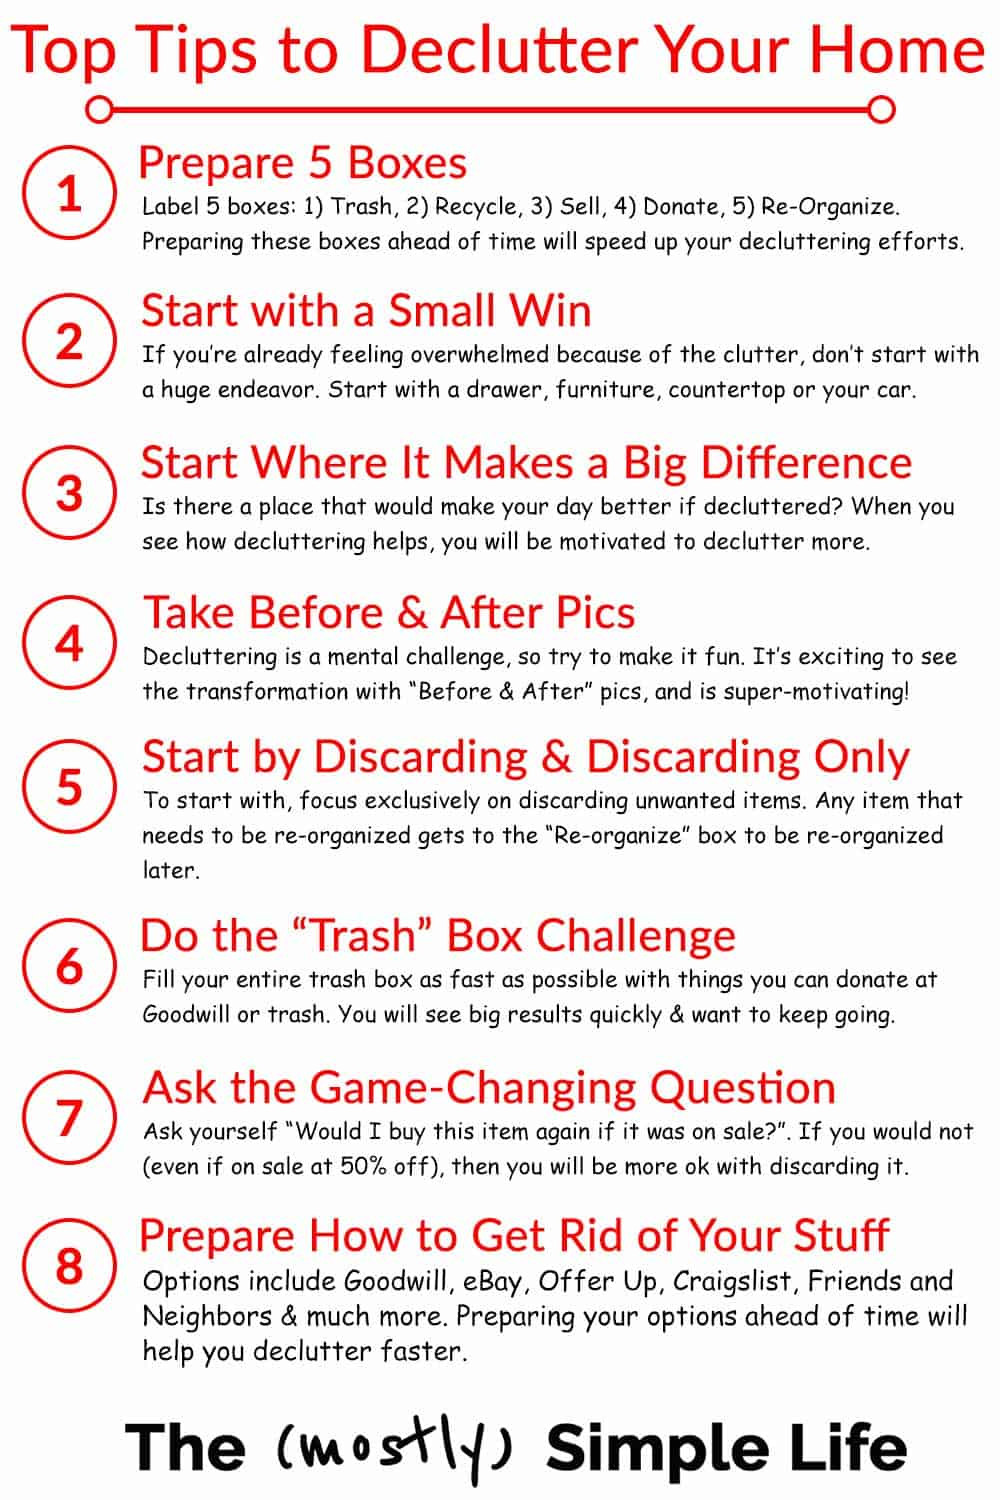 Top 8 Tips to Declutter & See Results Fast